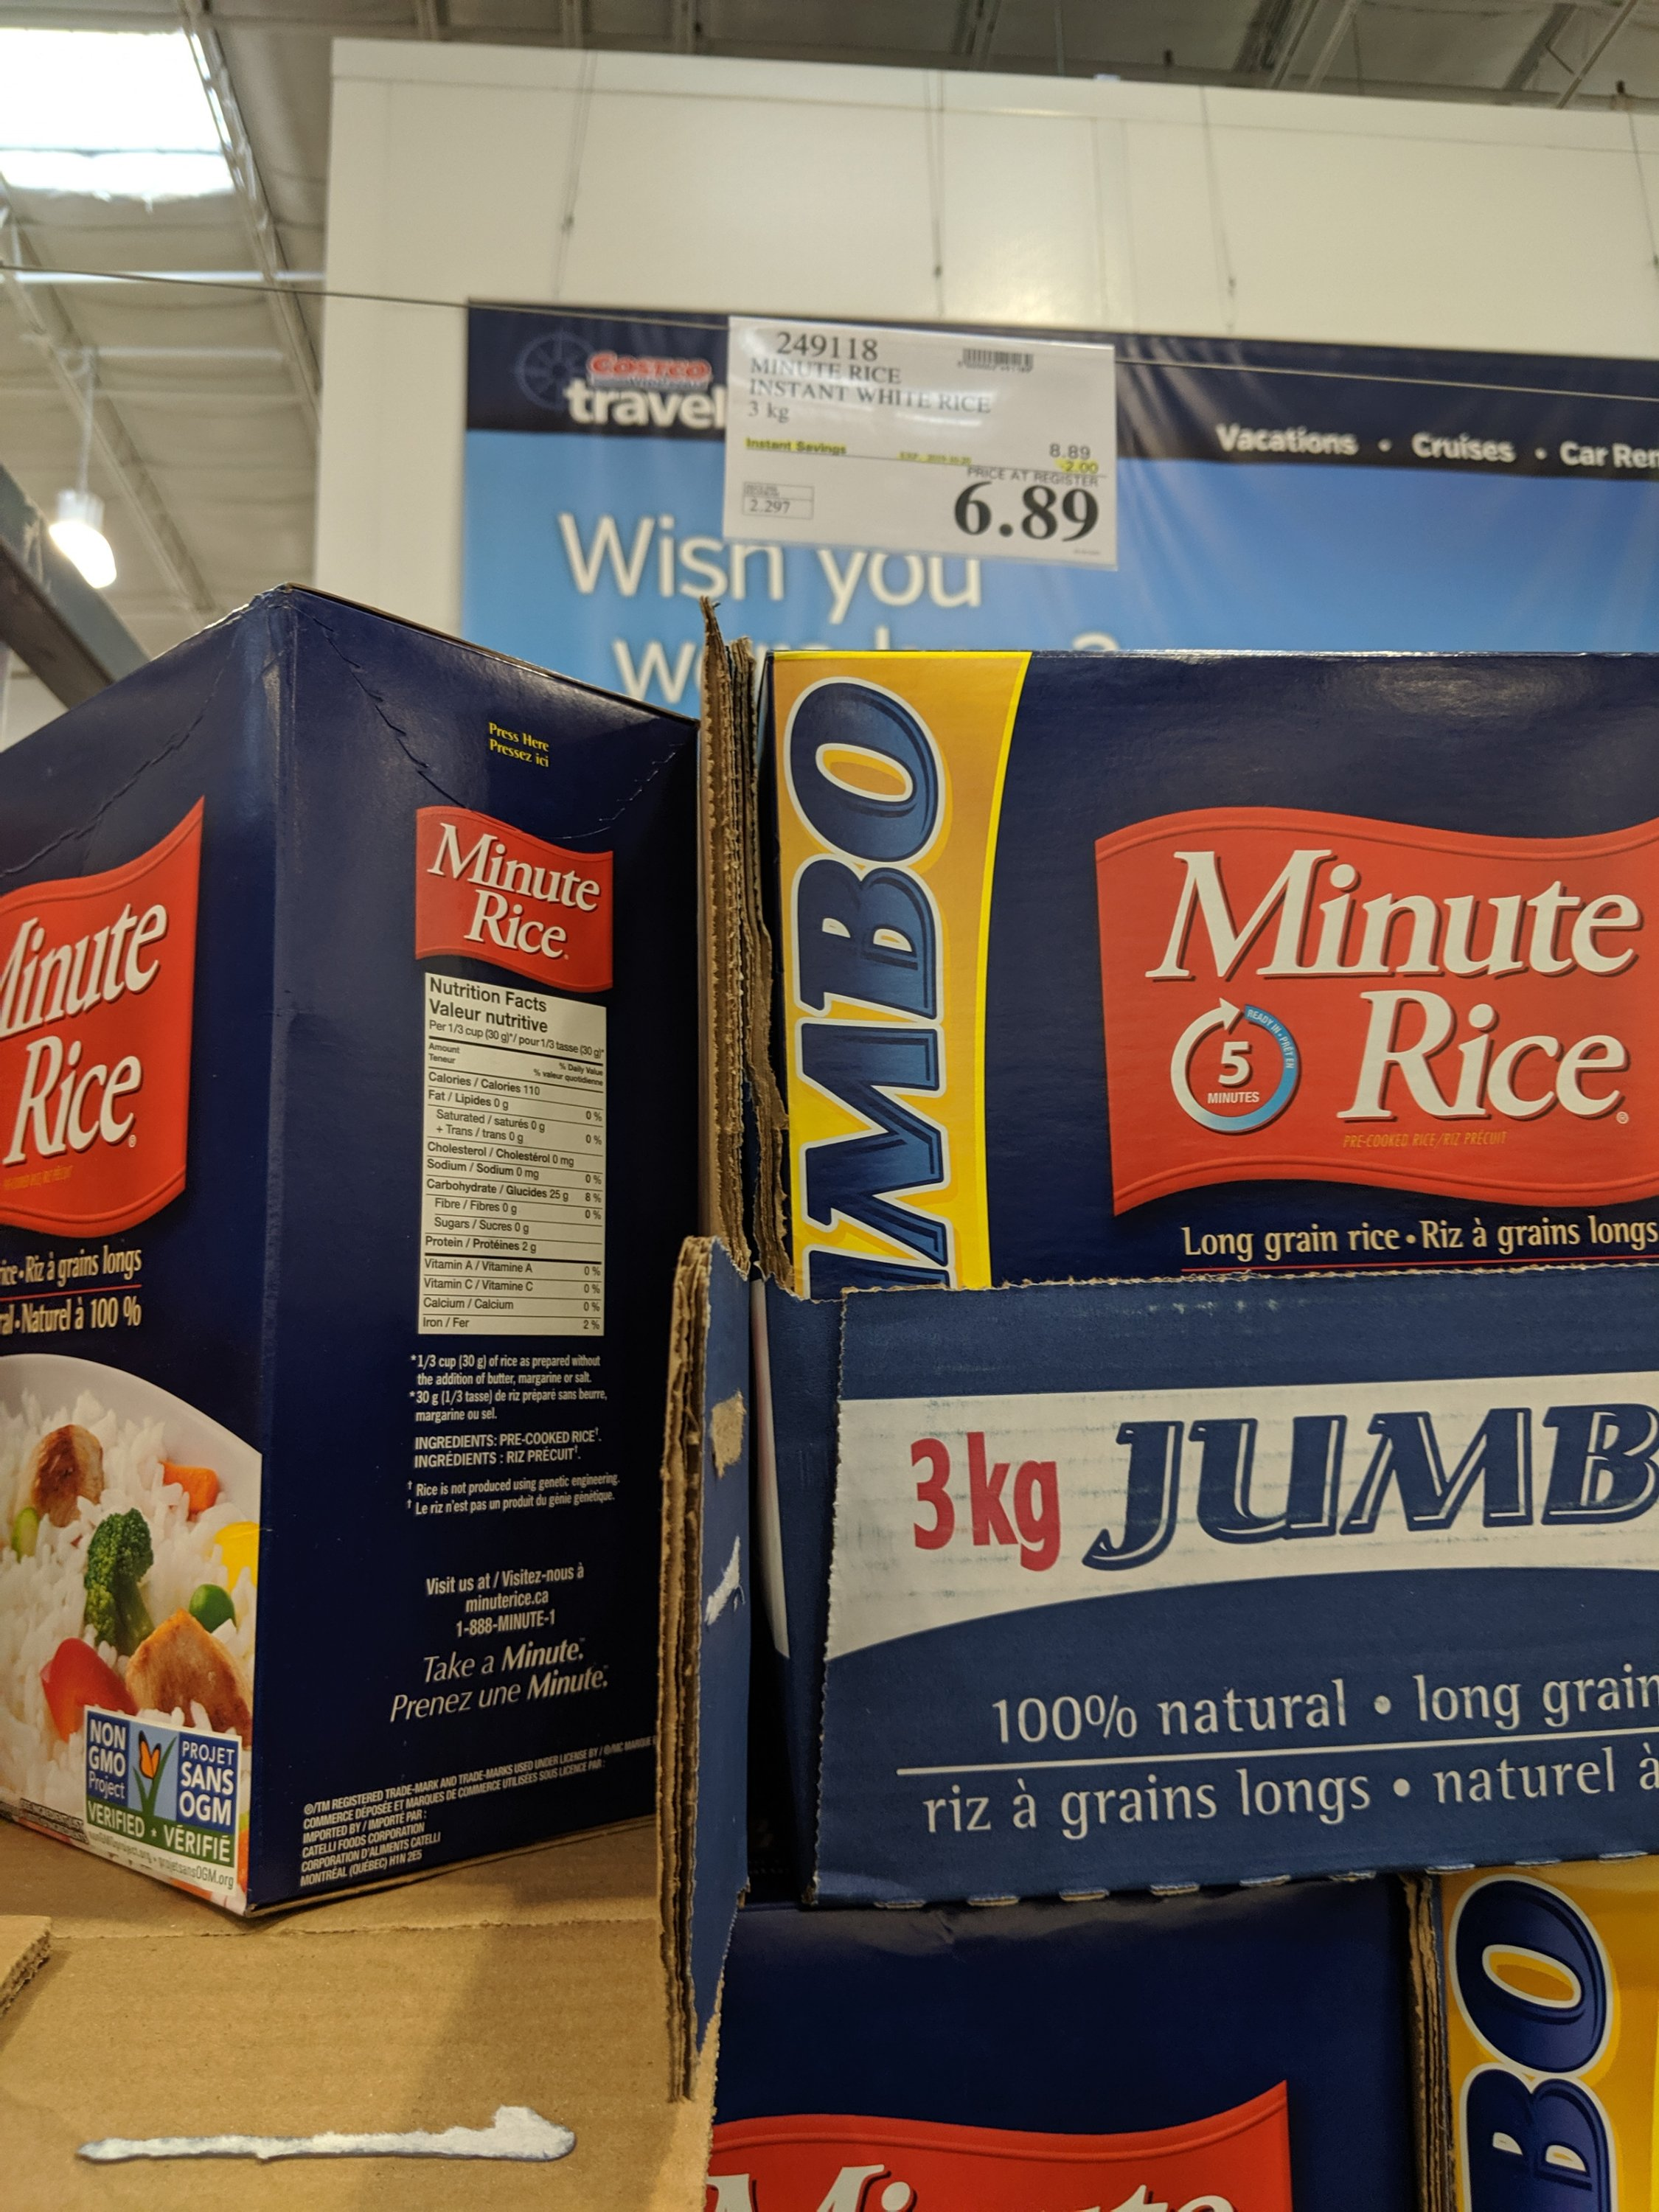 Costco unadvertised deals of the week starting October